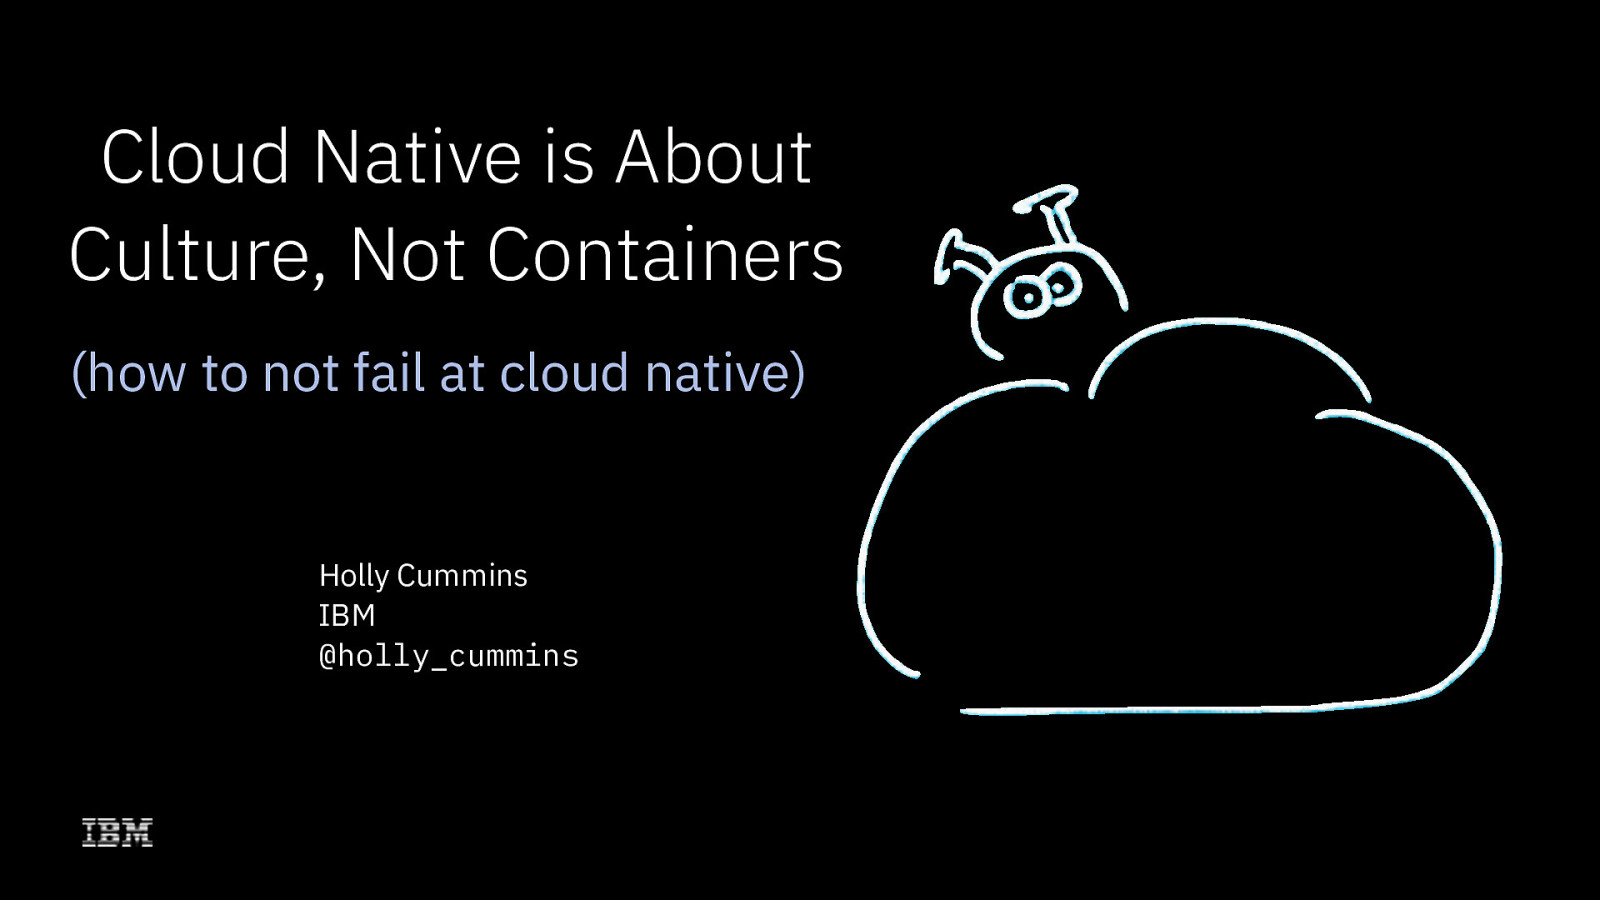 Cloud Native is about Culture, not Containers by Holly Cummins